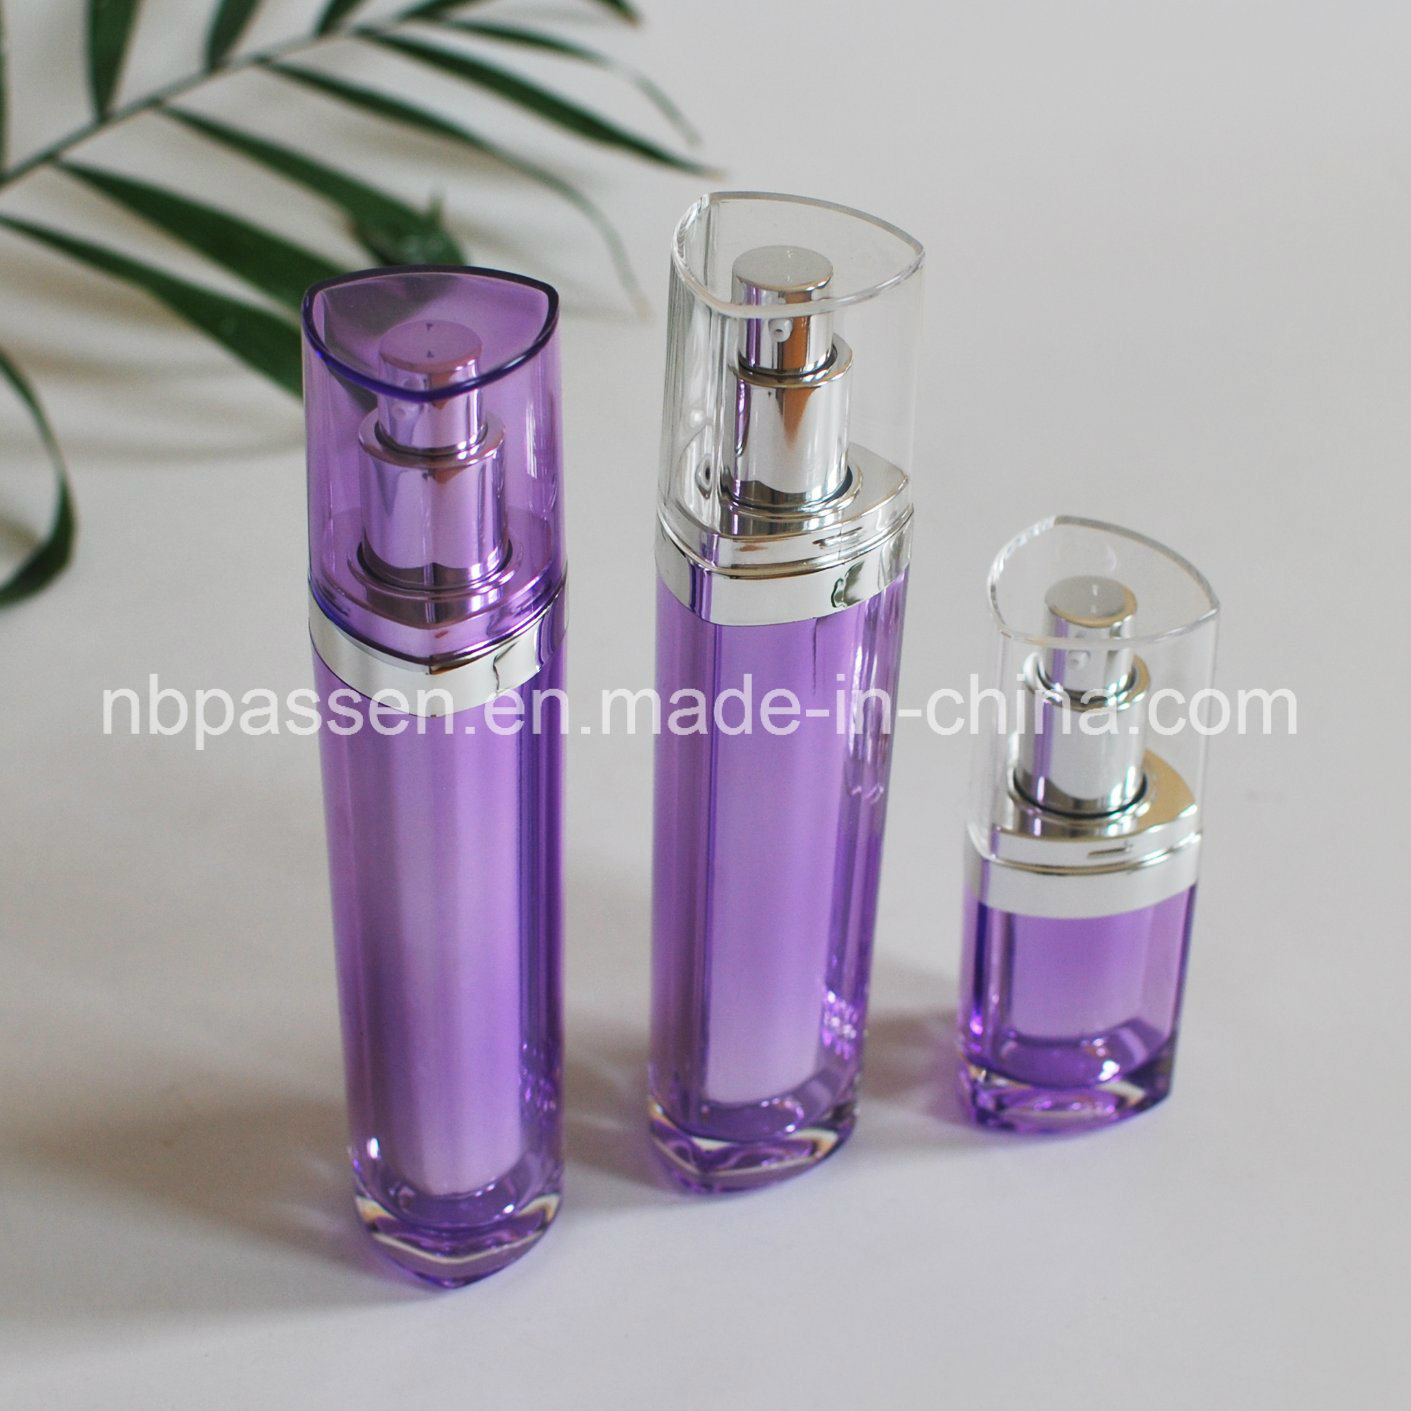 15/50ml Purple Acrylic Bottle with Lotion Pump for Cosmetics (PPC-NEW-093)